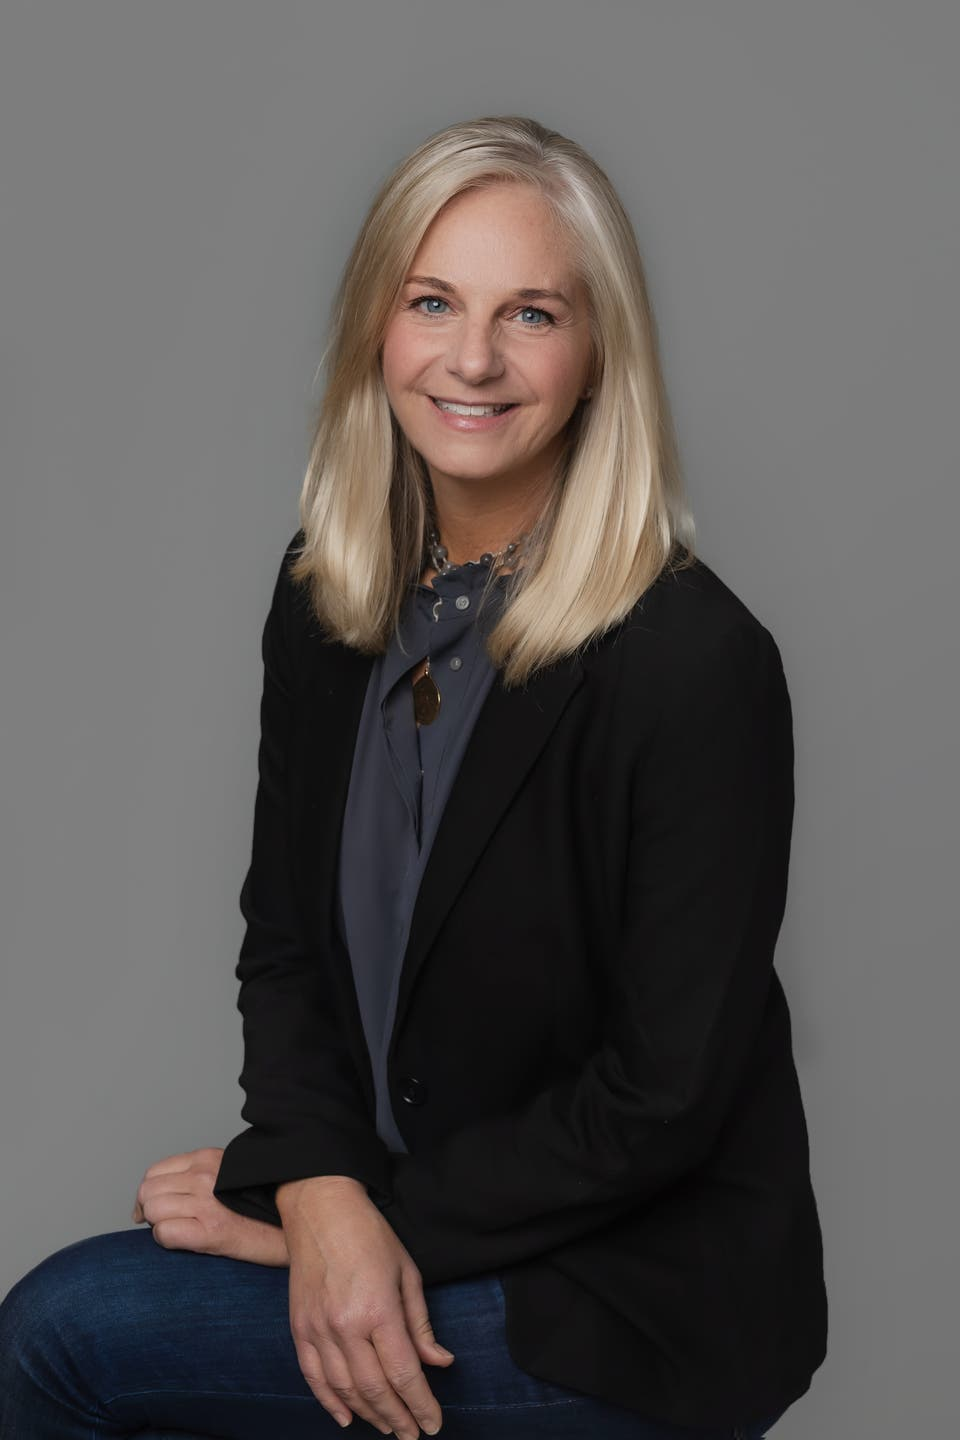 Michele Salle, Chief People Officer, dentsu Americas